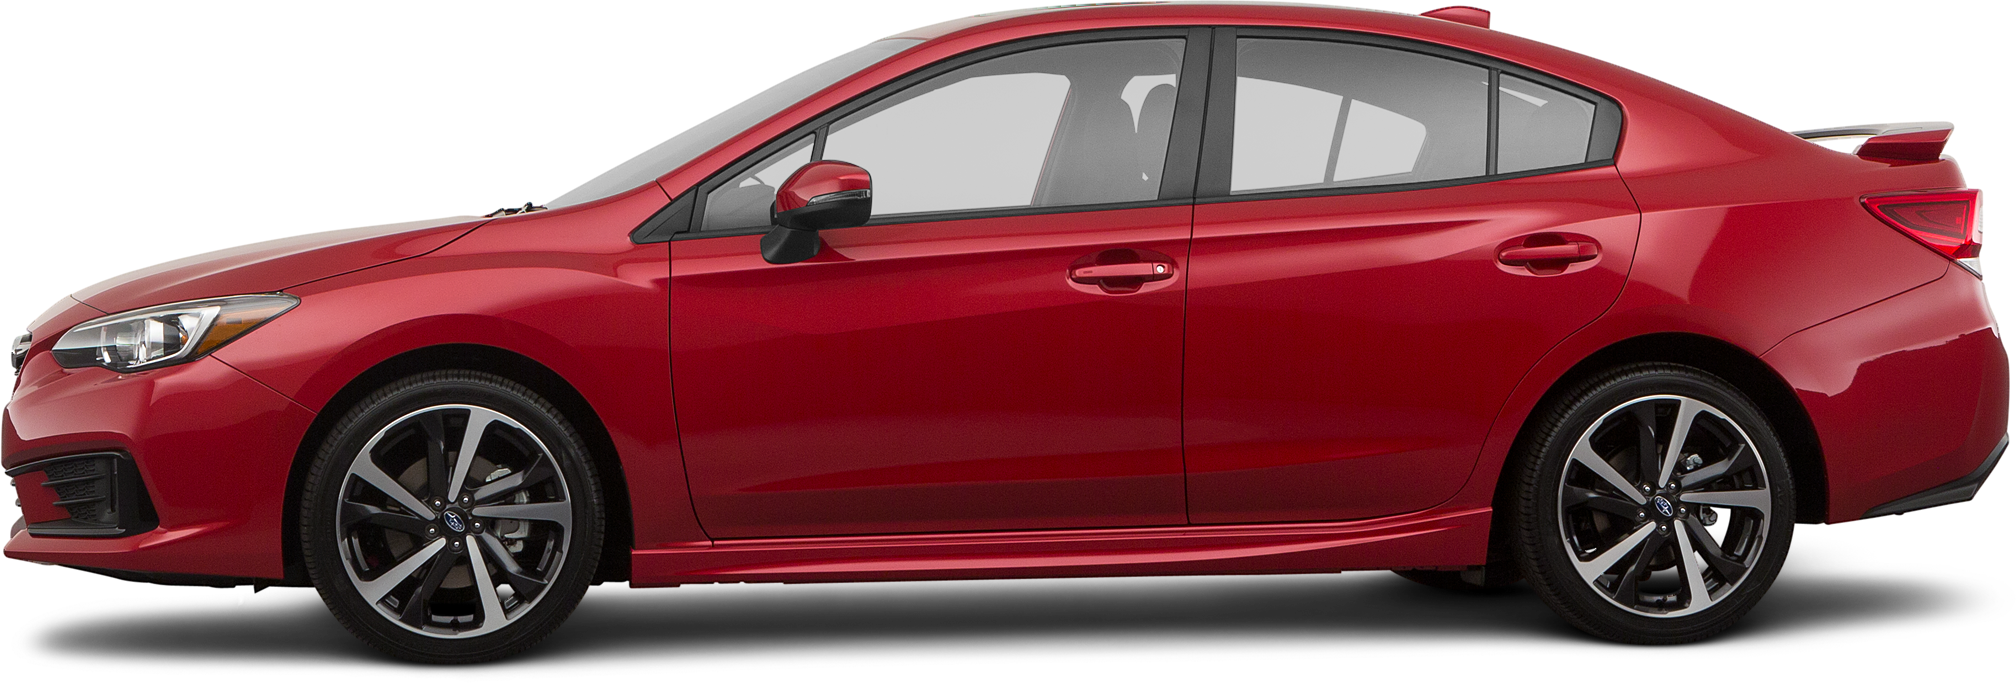 2020 Subaru Impreza Sedan Base Trim Level